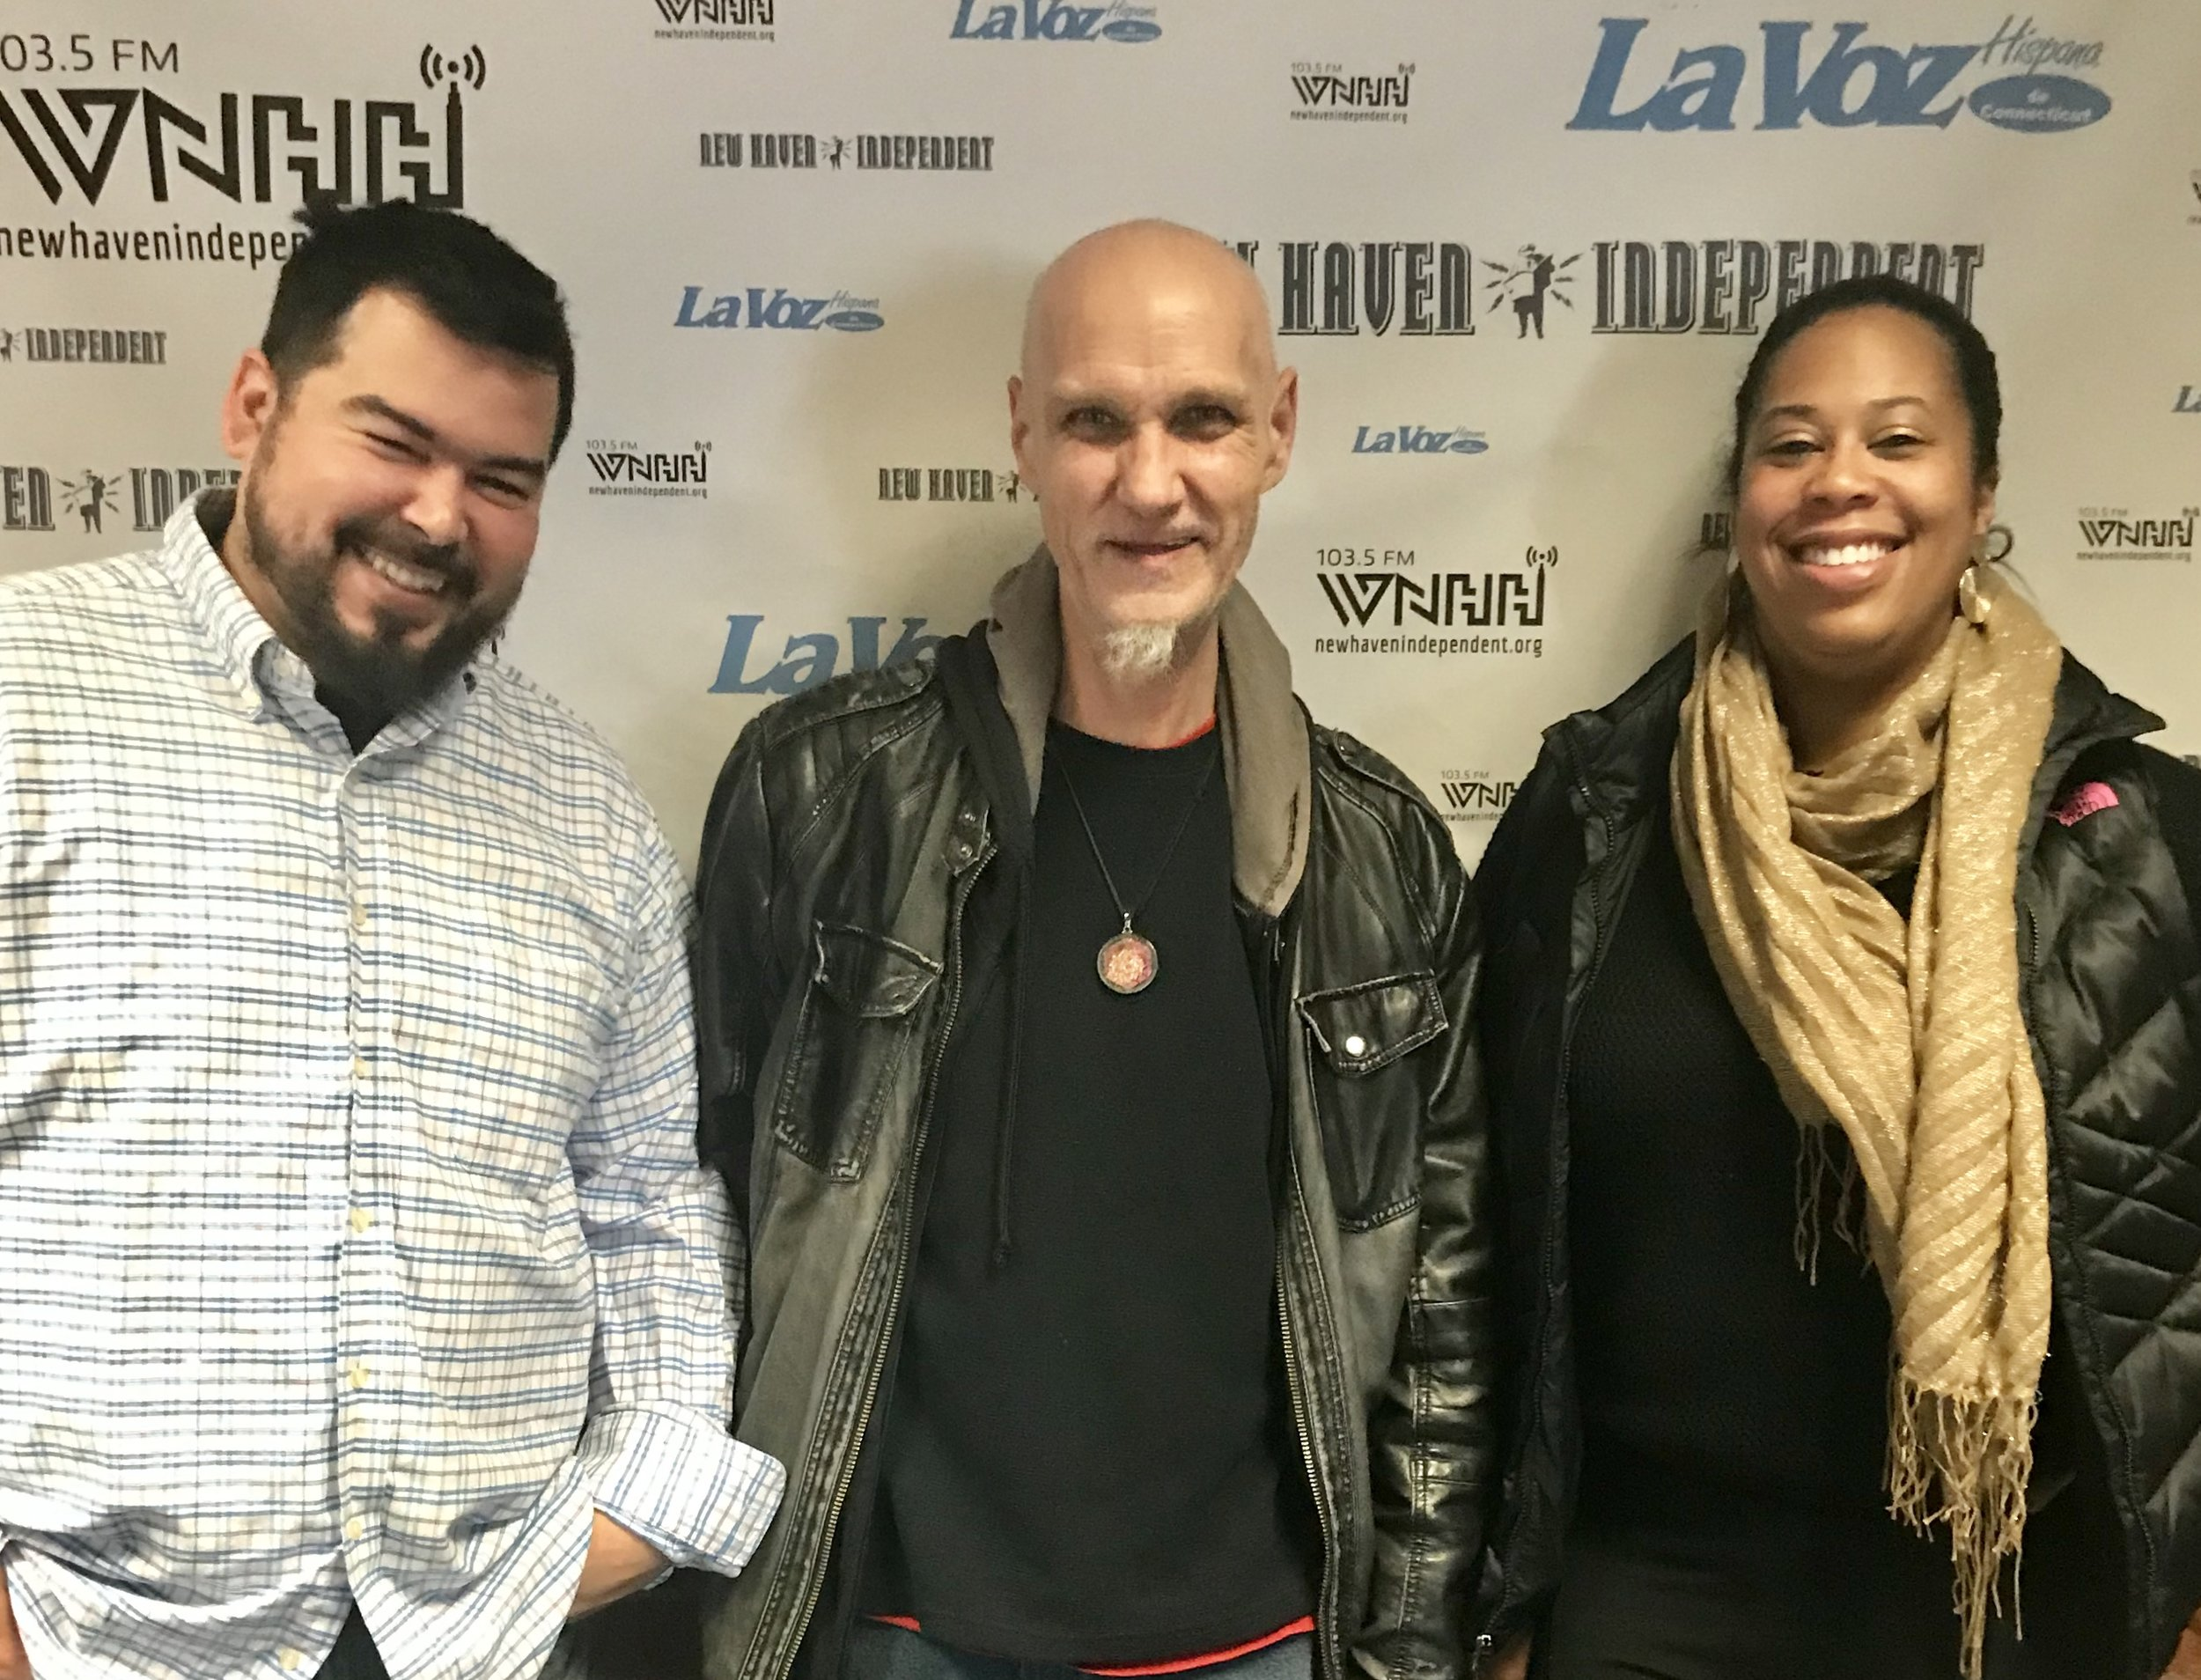 Joe LaChance, Kebra Smith-Bolden & Uncle Lou give us an update on the current state of weed, and speak with special call in guests Jason Ortiz & Councilwoman Burmdez.